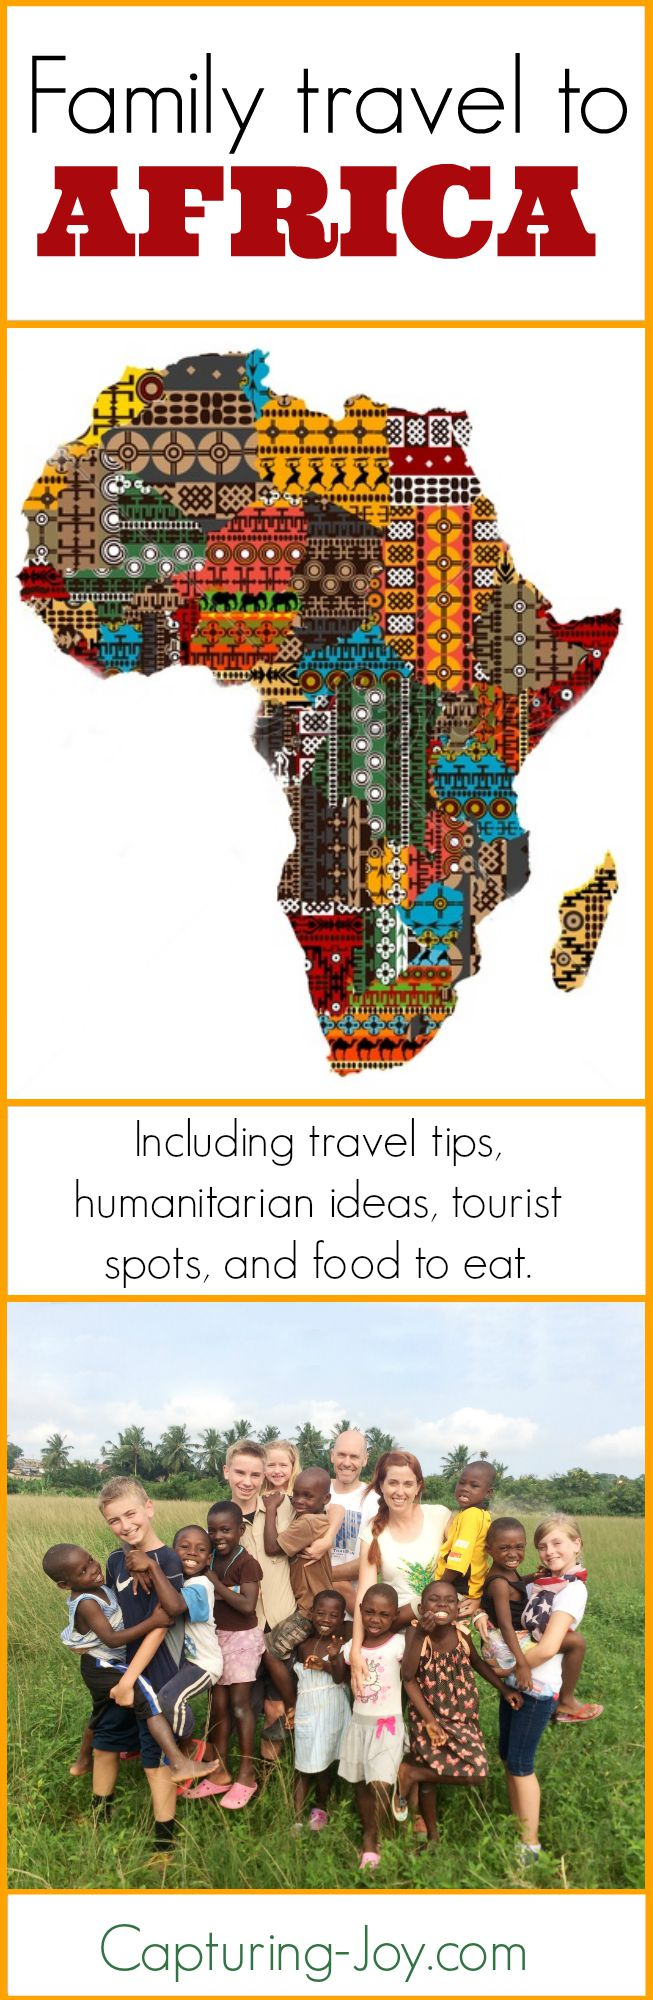 Family travel to Africa including travel tips, humanitarian ideas, tourist spots, and food to eat